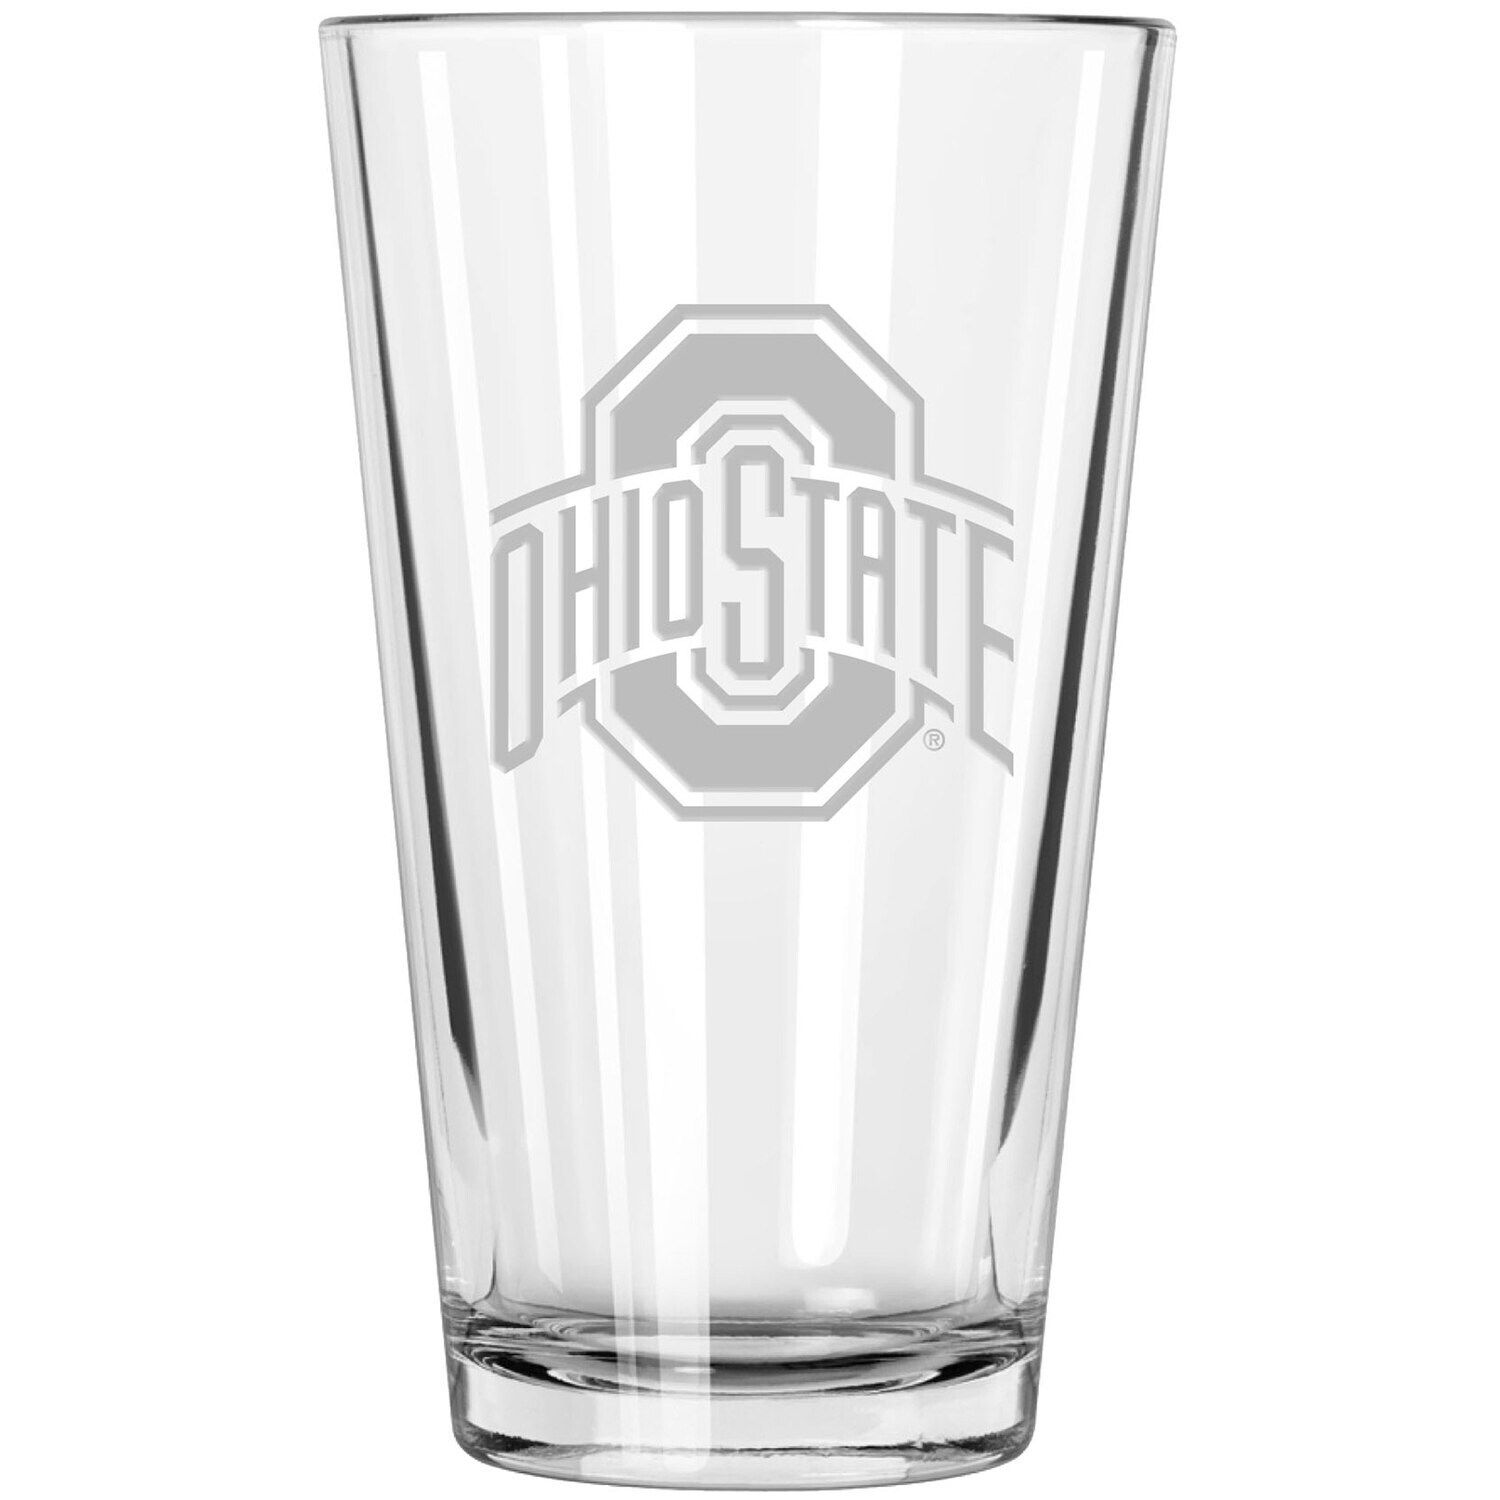 Ohio State Buckeyes Etched 16oz. Pint Glass